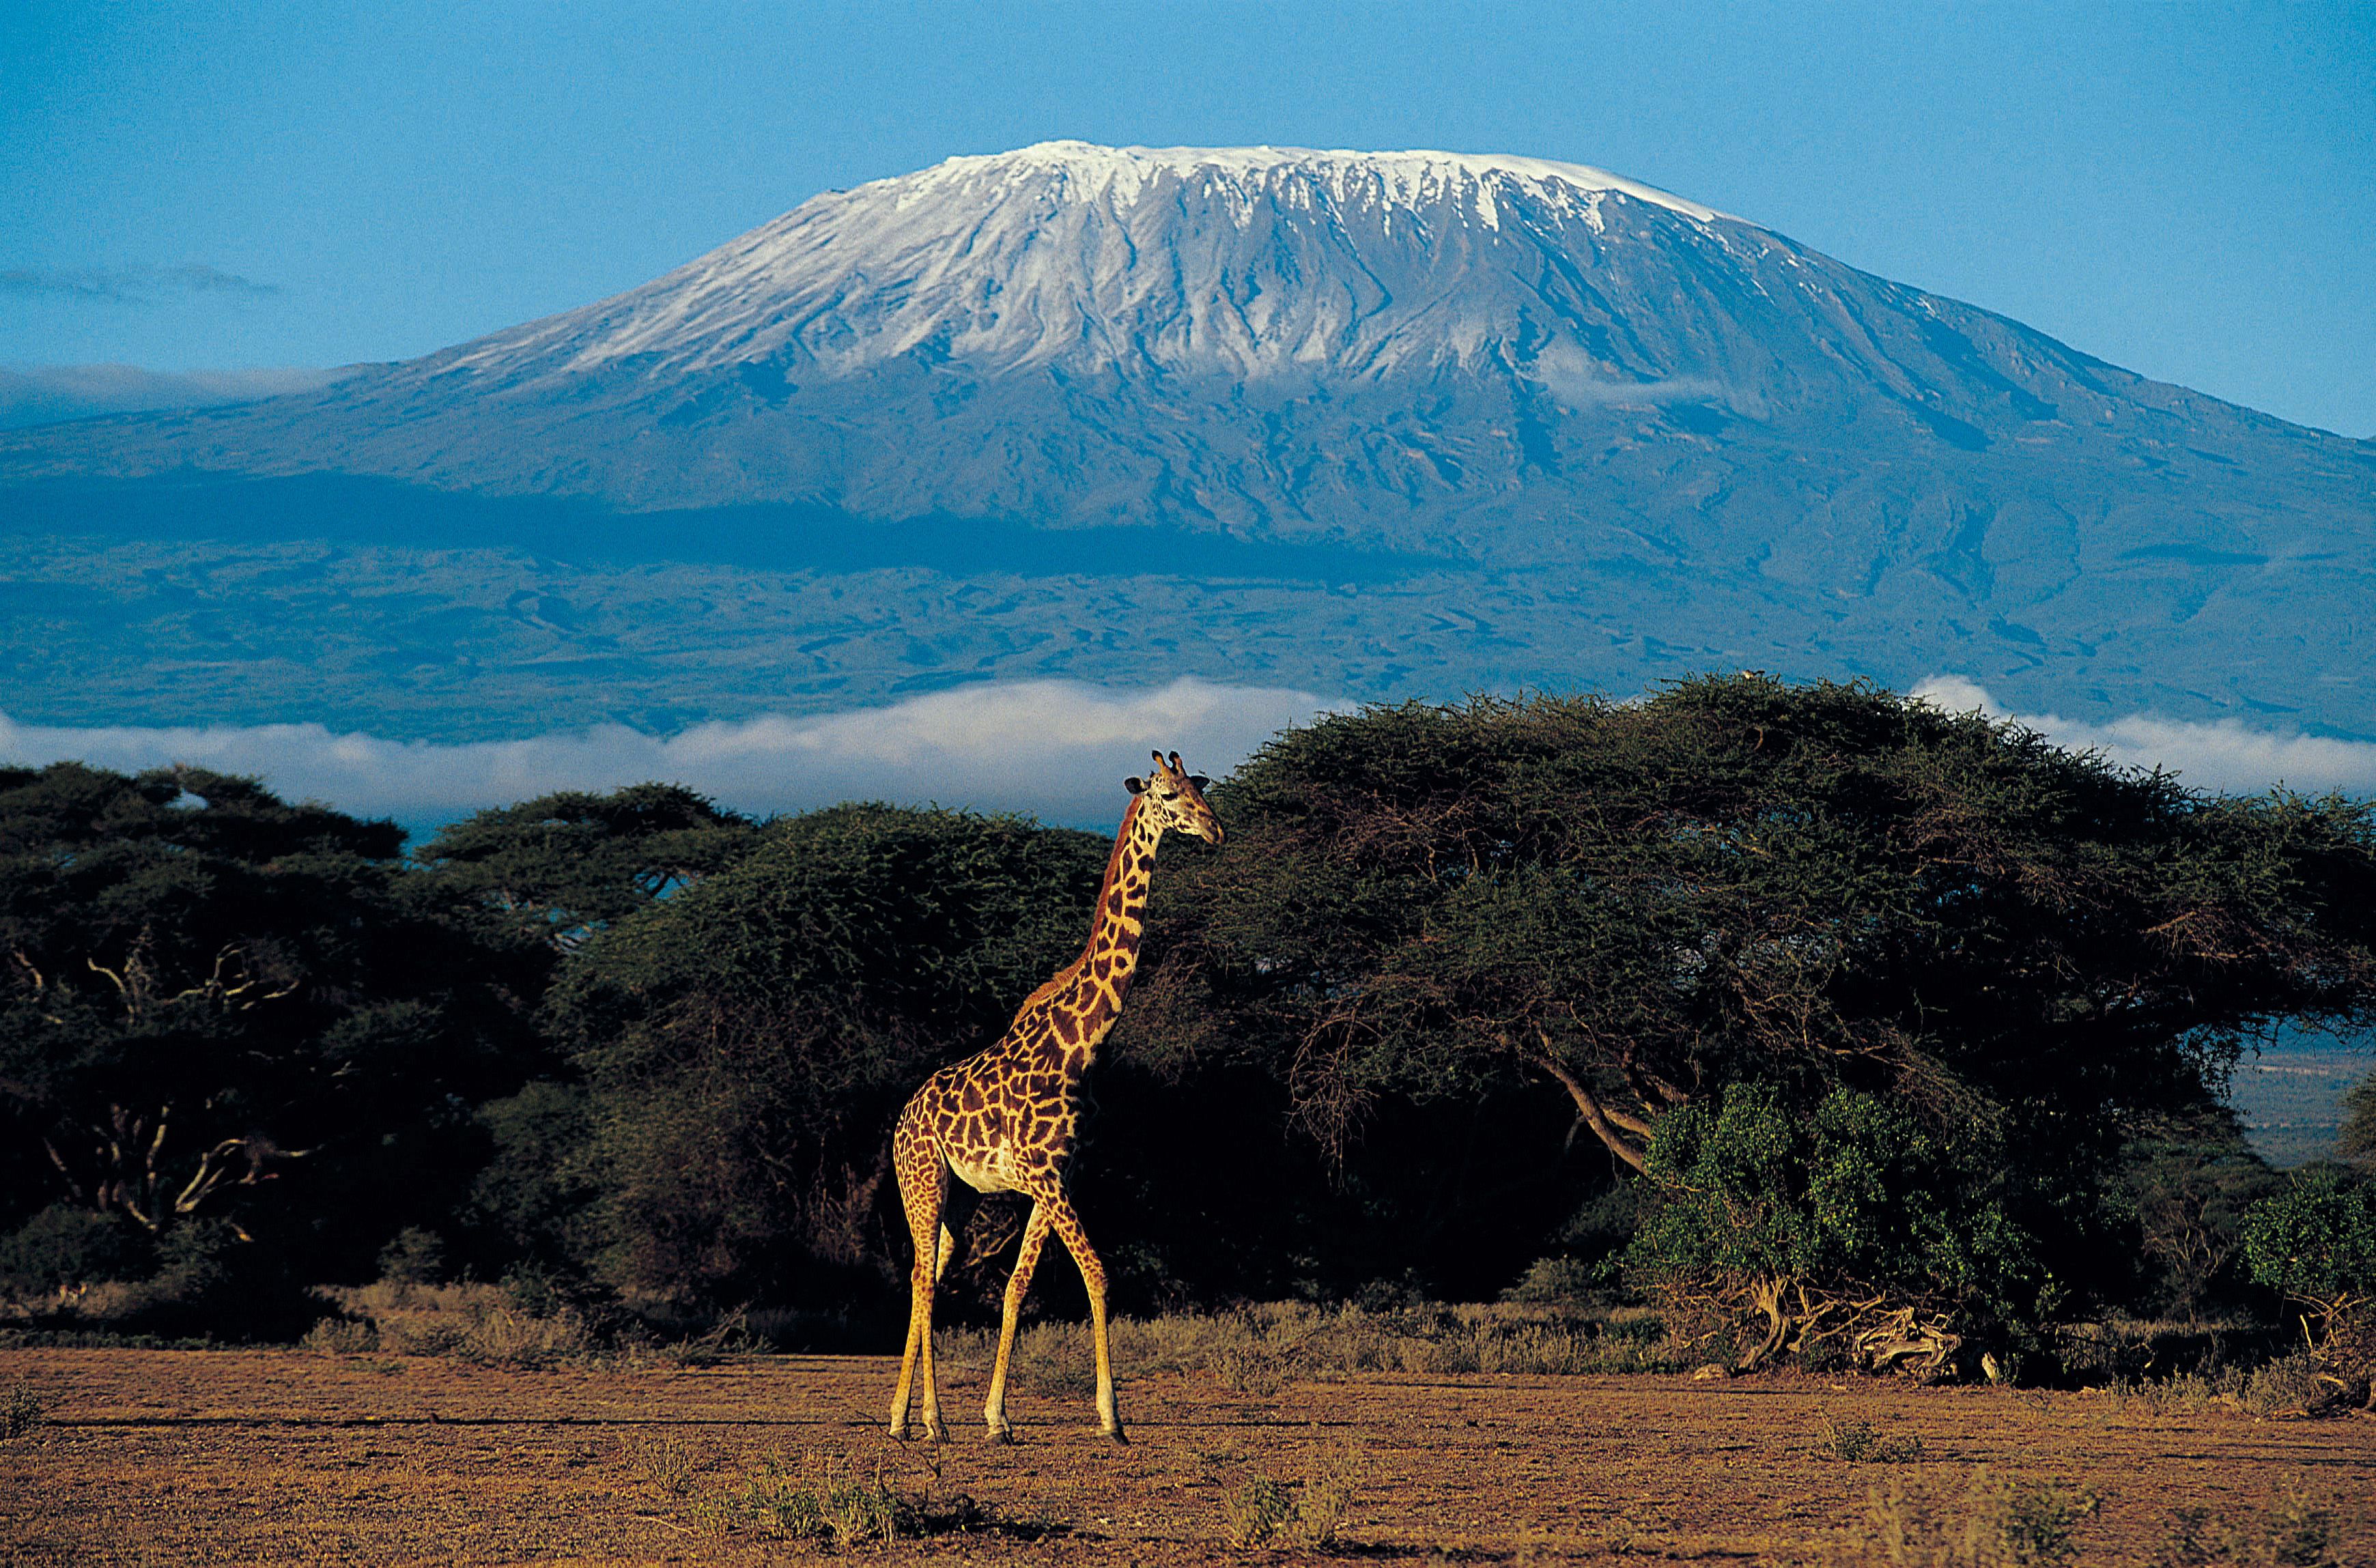 Giraffe at Mount Kilimanjaro